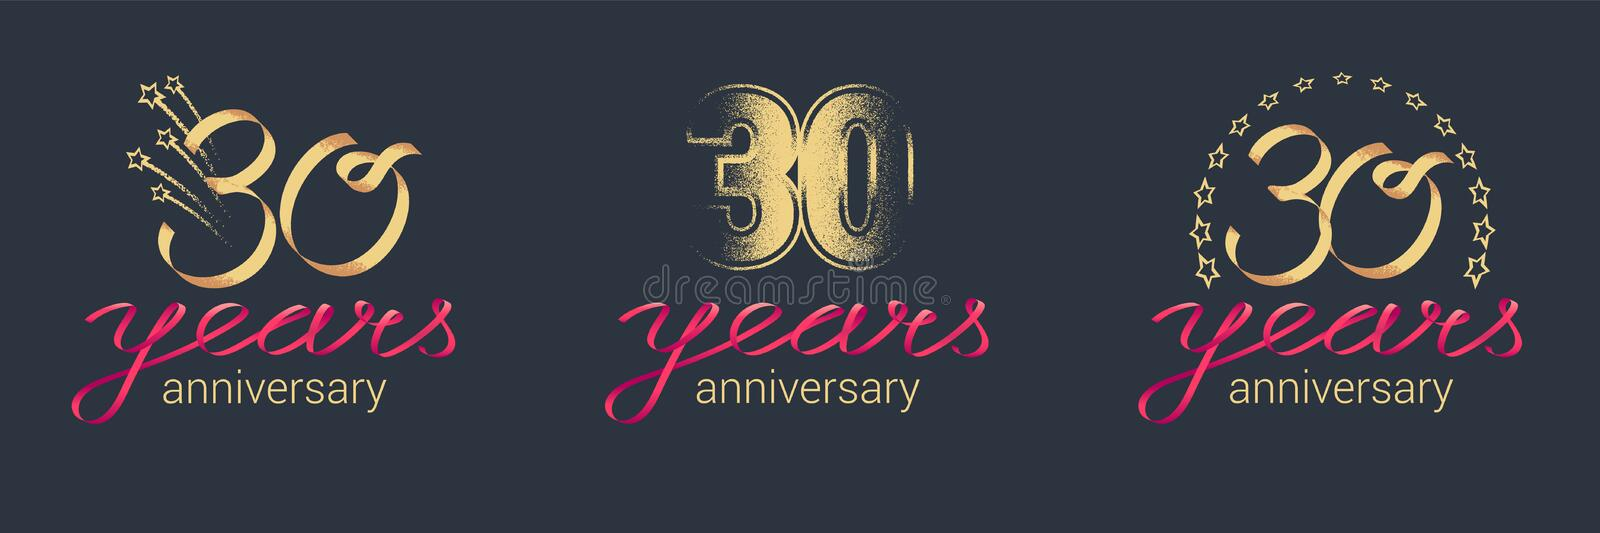 30 years anniversary vector icon, logo set royalty free illustration